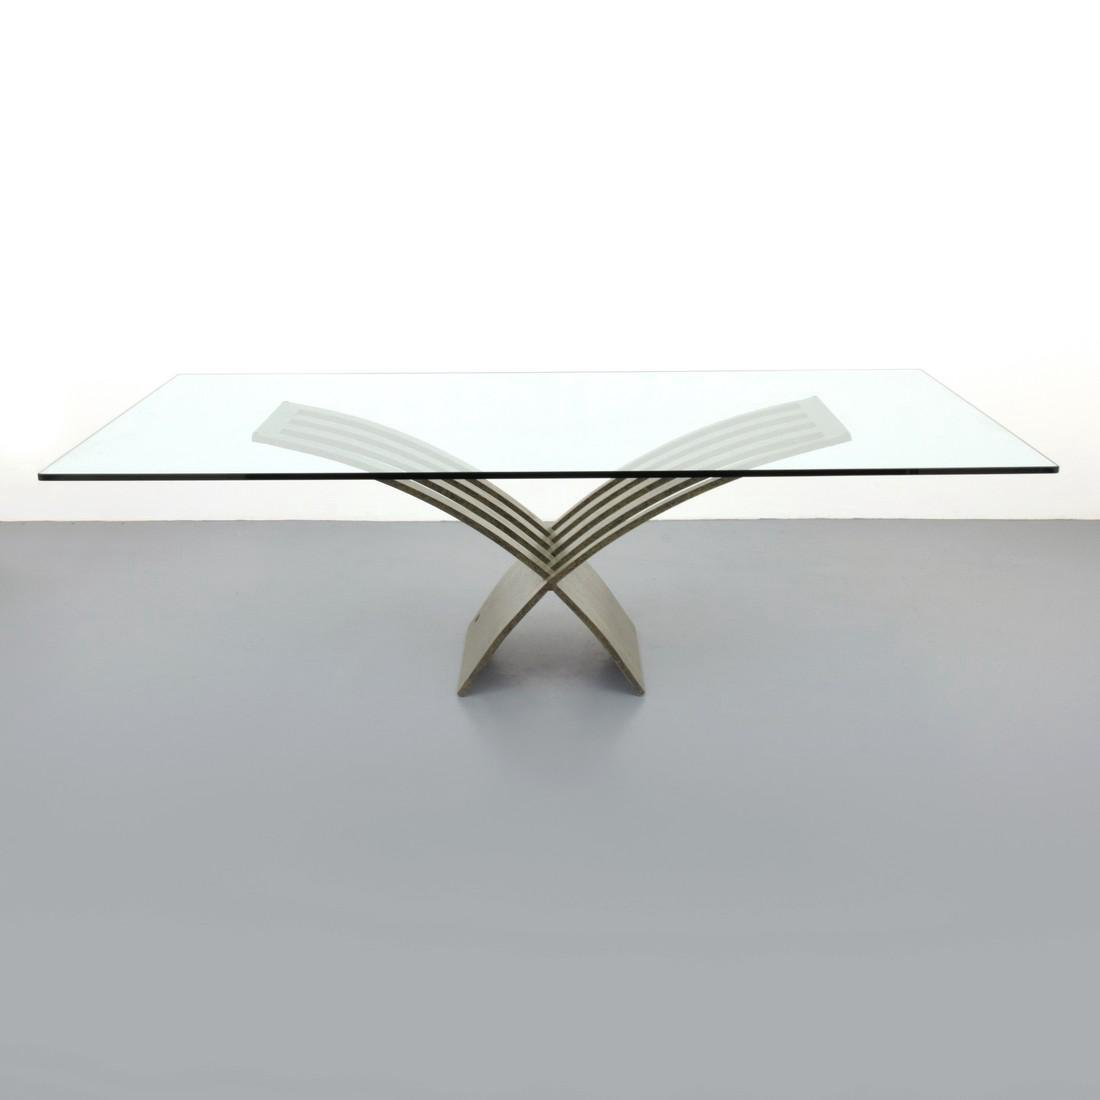 Valenti MESA TIJERA Dining Table